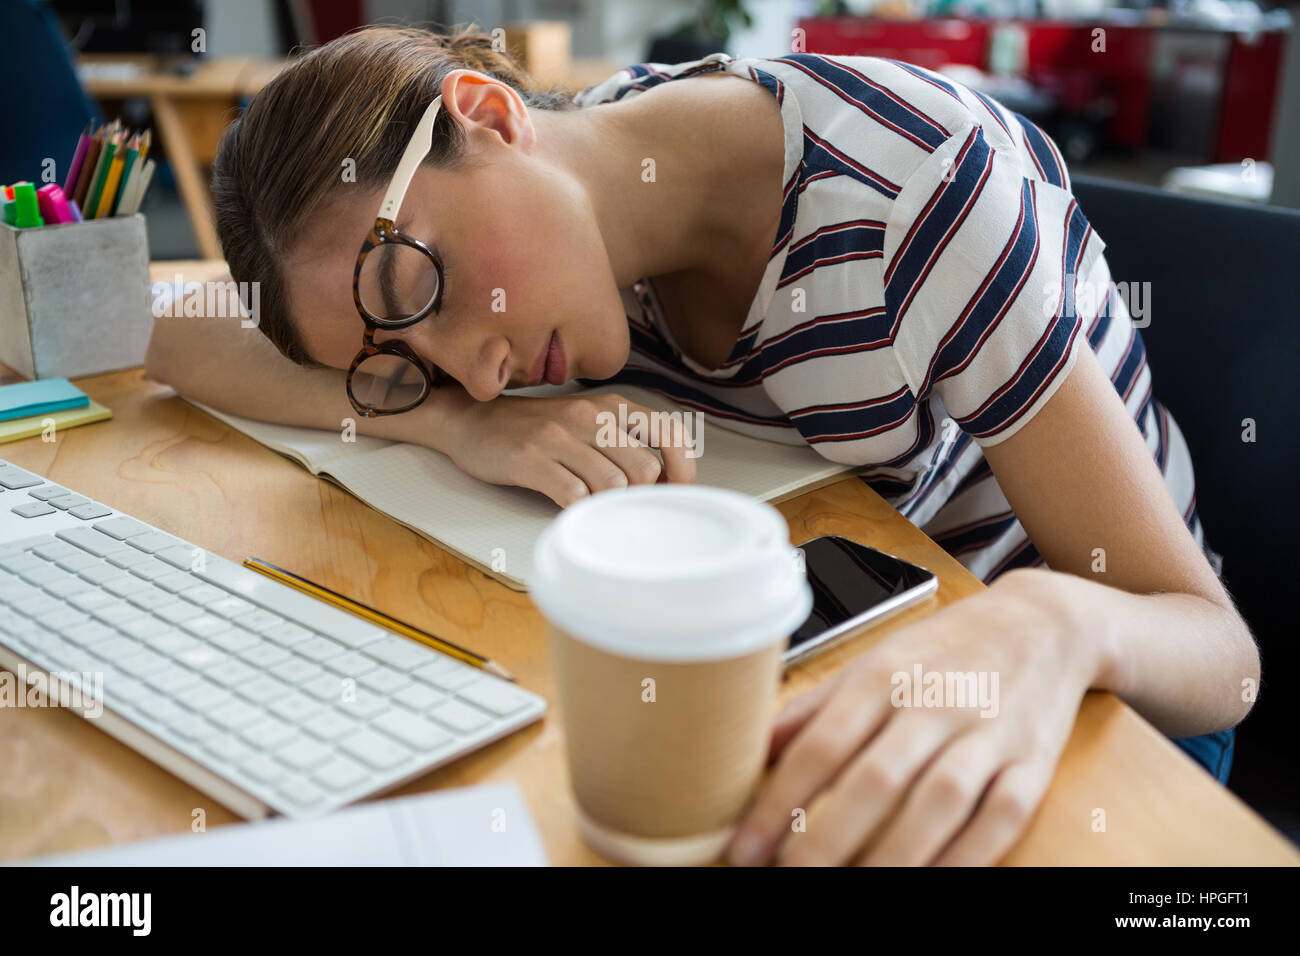 Overworked graphic designer sleeping on his desk in the creative office - Stock Image